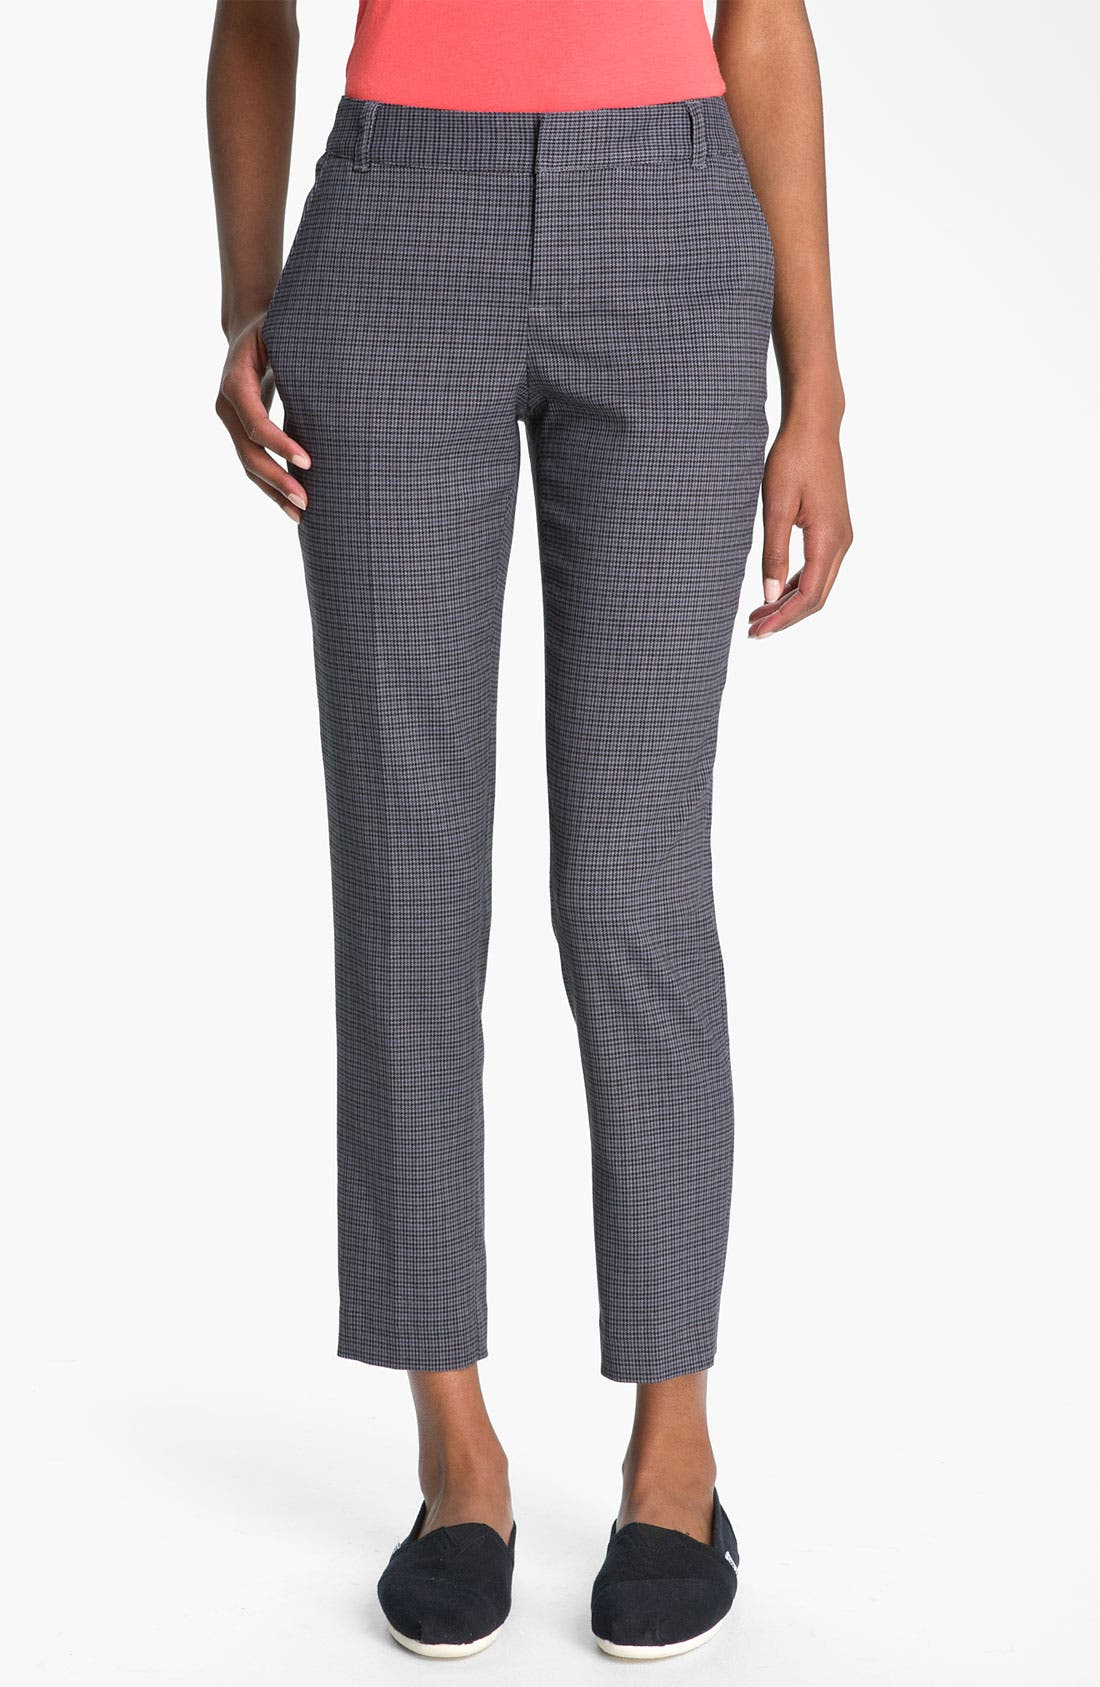 Alternate Image 1 Selected - BP. Plaid Slim Ankle Pants (Juniors)